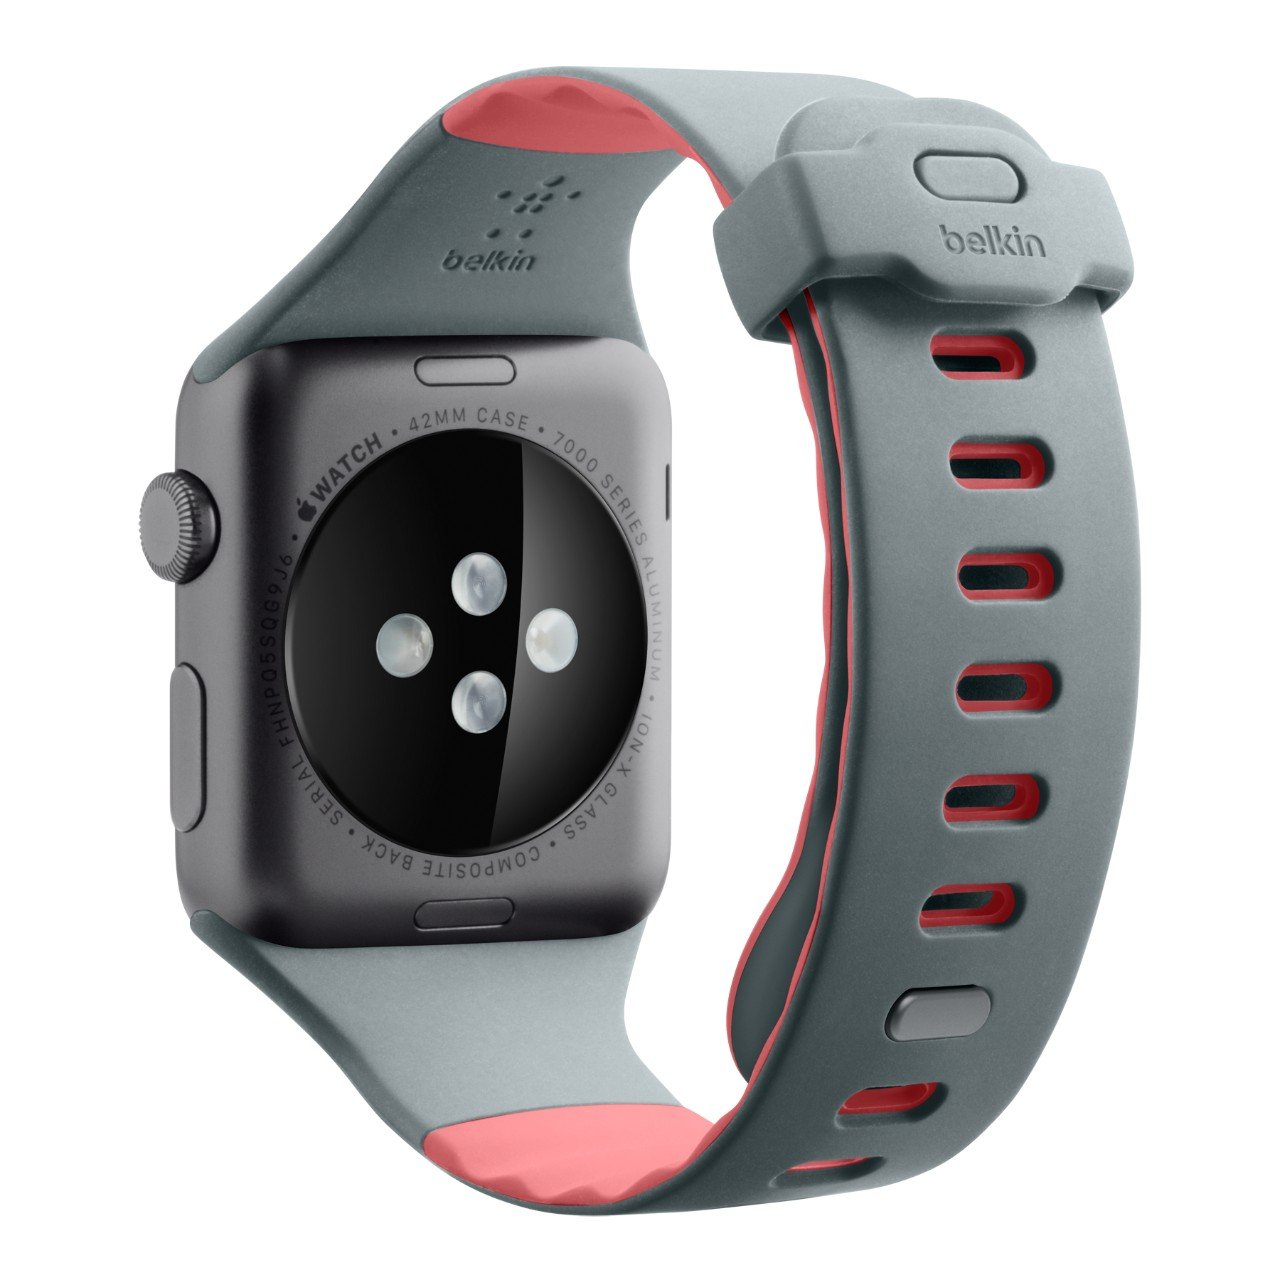 Belkin F8W730btC01 - Correa Deportiva para Apple Watch (42 mm/44 mm), Banda Deportiva para Apple Watch Series 4, 3, 2, 1 (Pulsera de Reloj para Apple ...